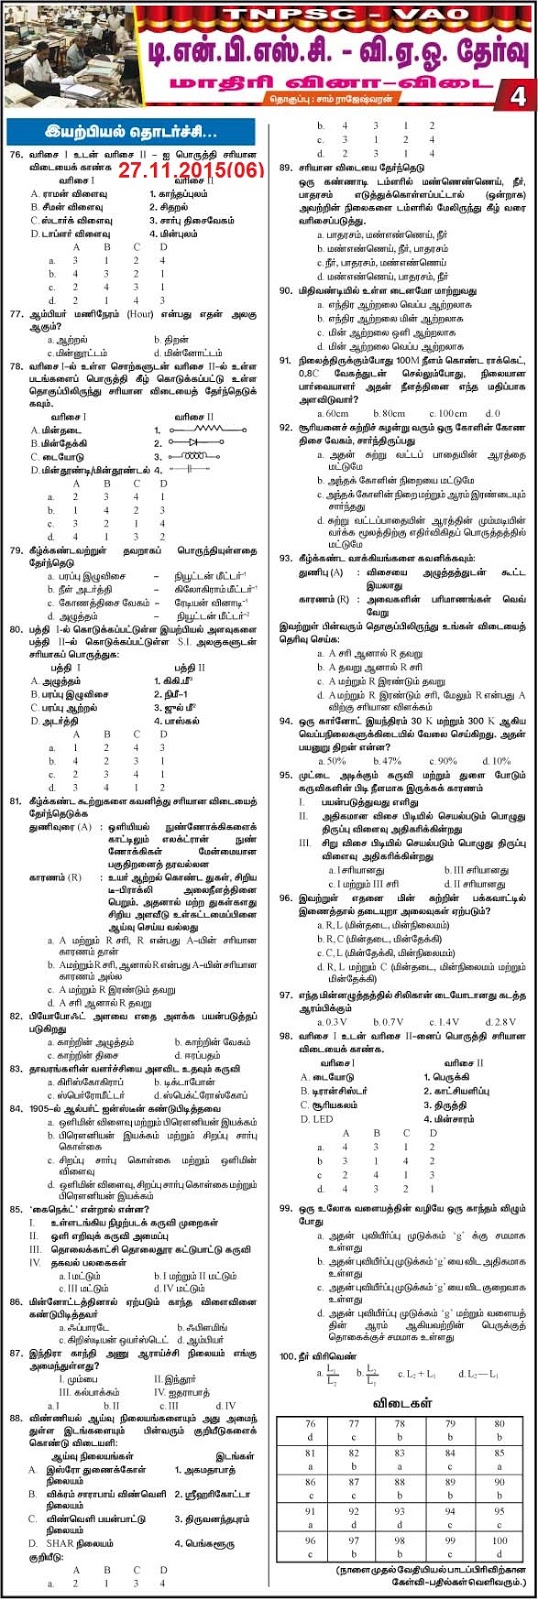 Model Questions and Answers for   TNPSC VAO Exam 2015  27.11.2015  Daily Thanthi Series (06)    [Download 2015 VAO 06]   Courtesy : Daily Thanthi